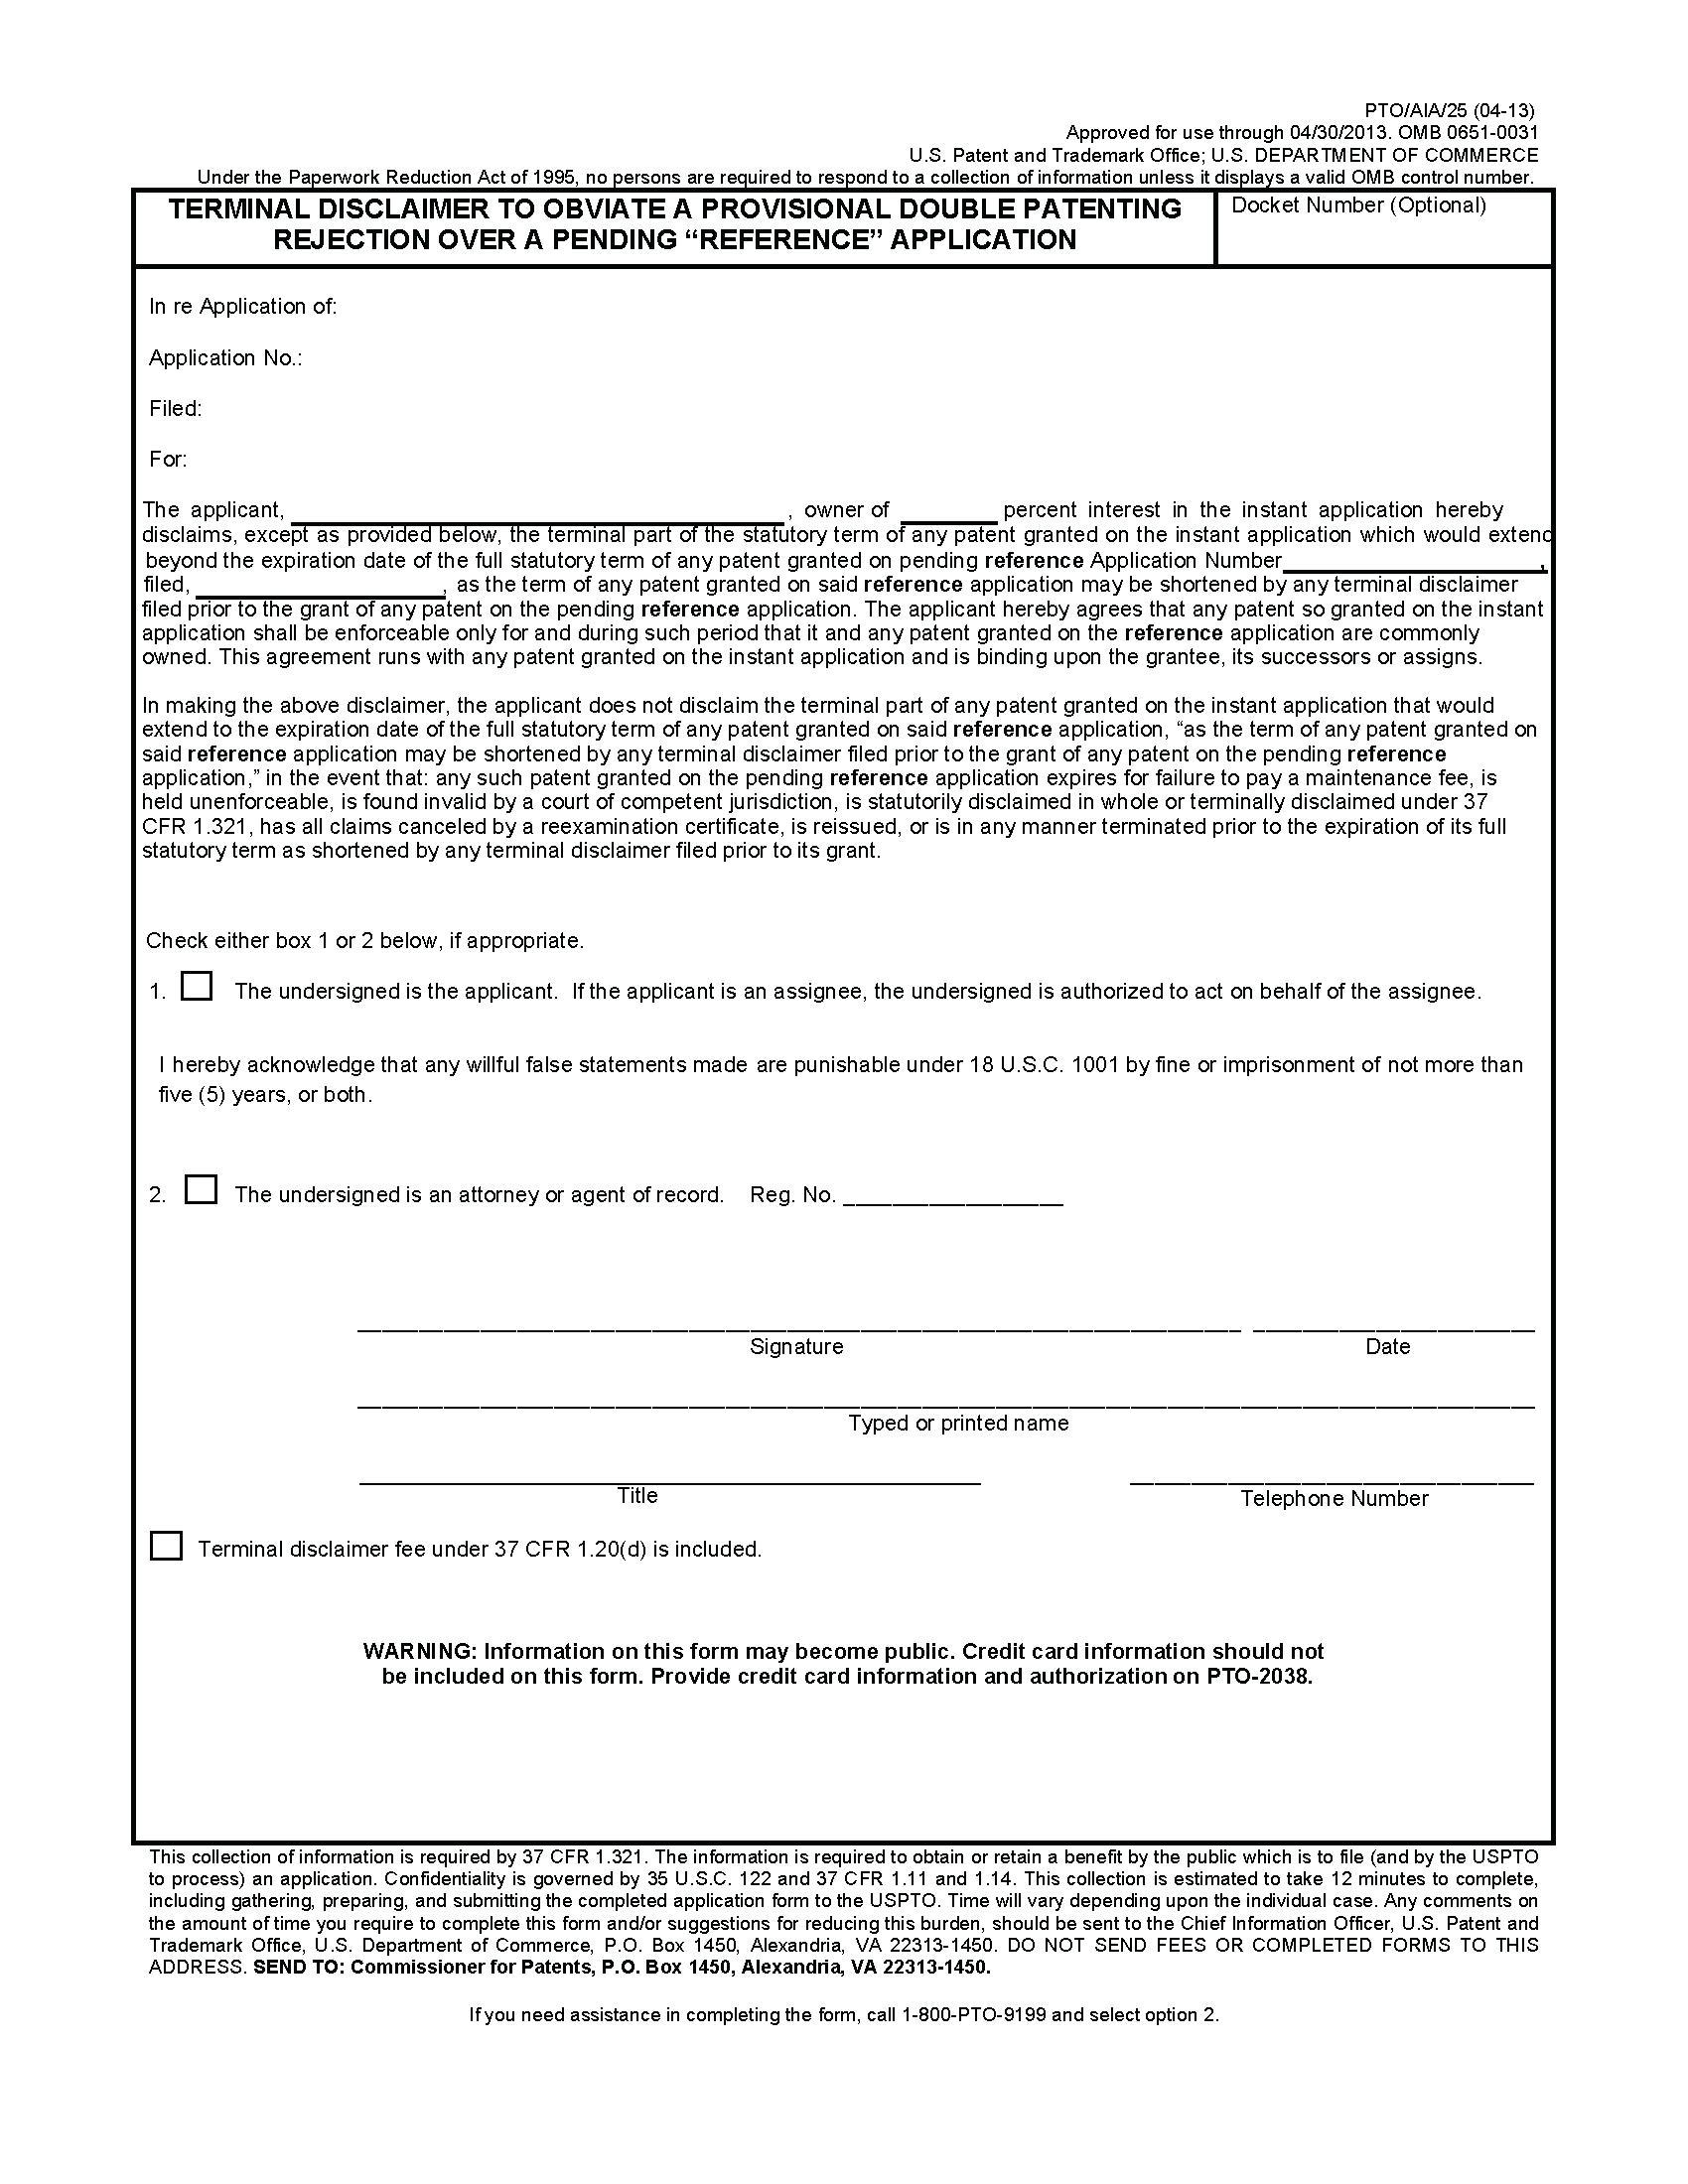 Provisional Patent Application Form South Africa